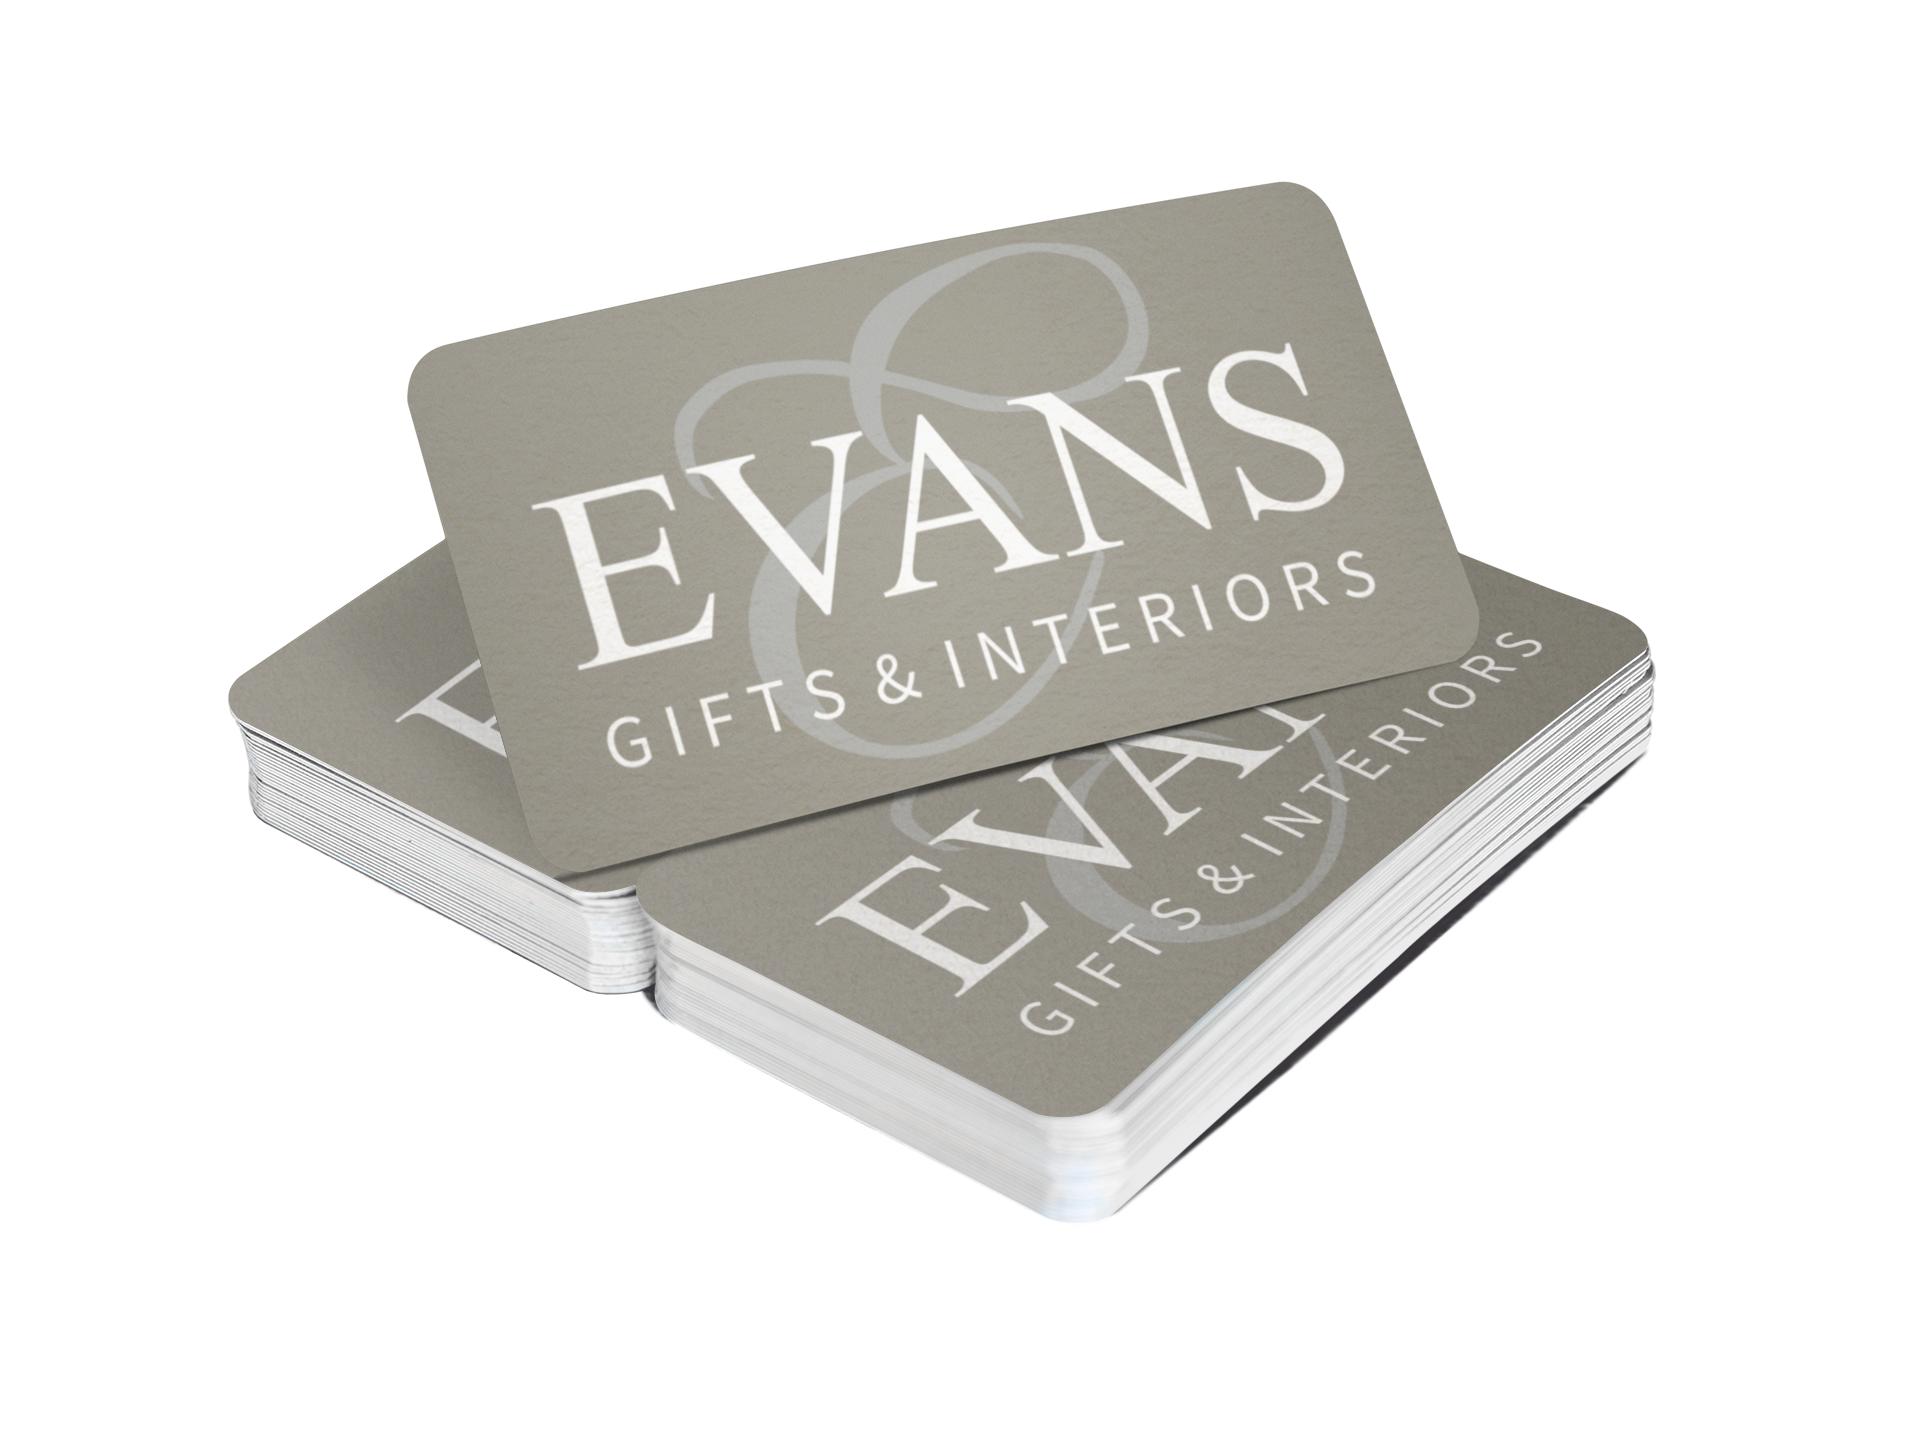 Evans-Gifts-Logo TMH case studies